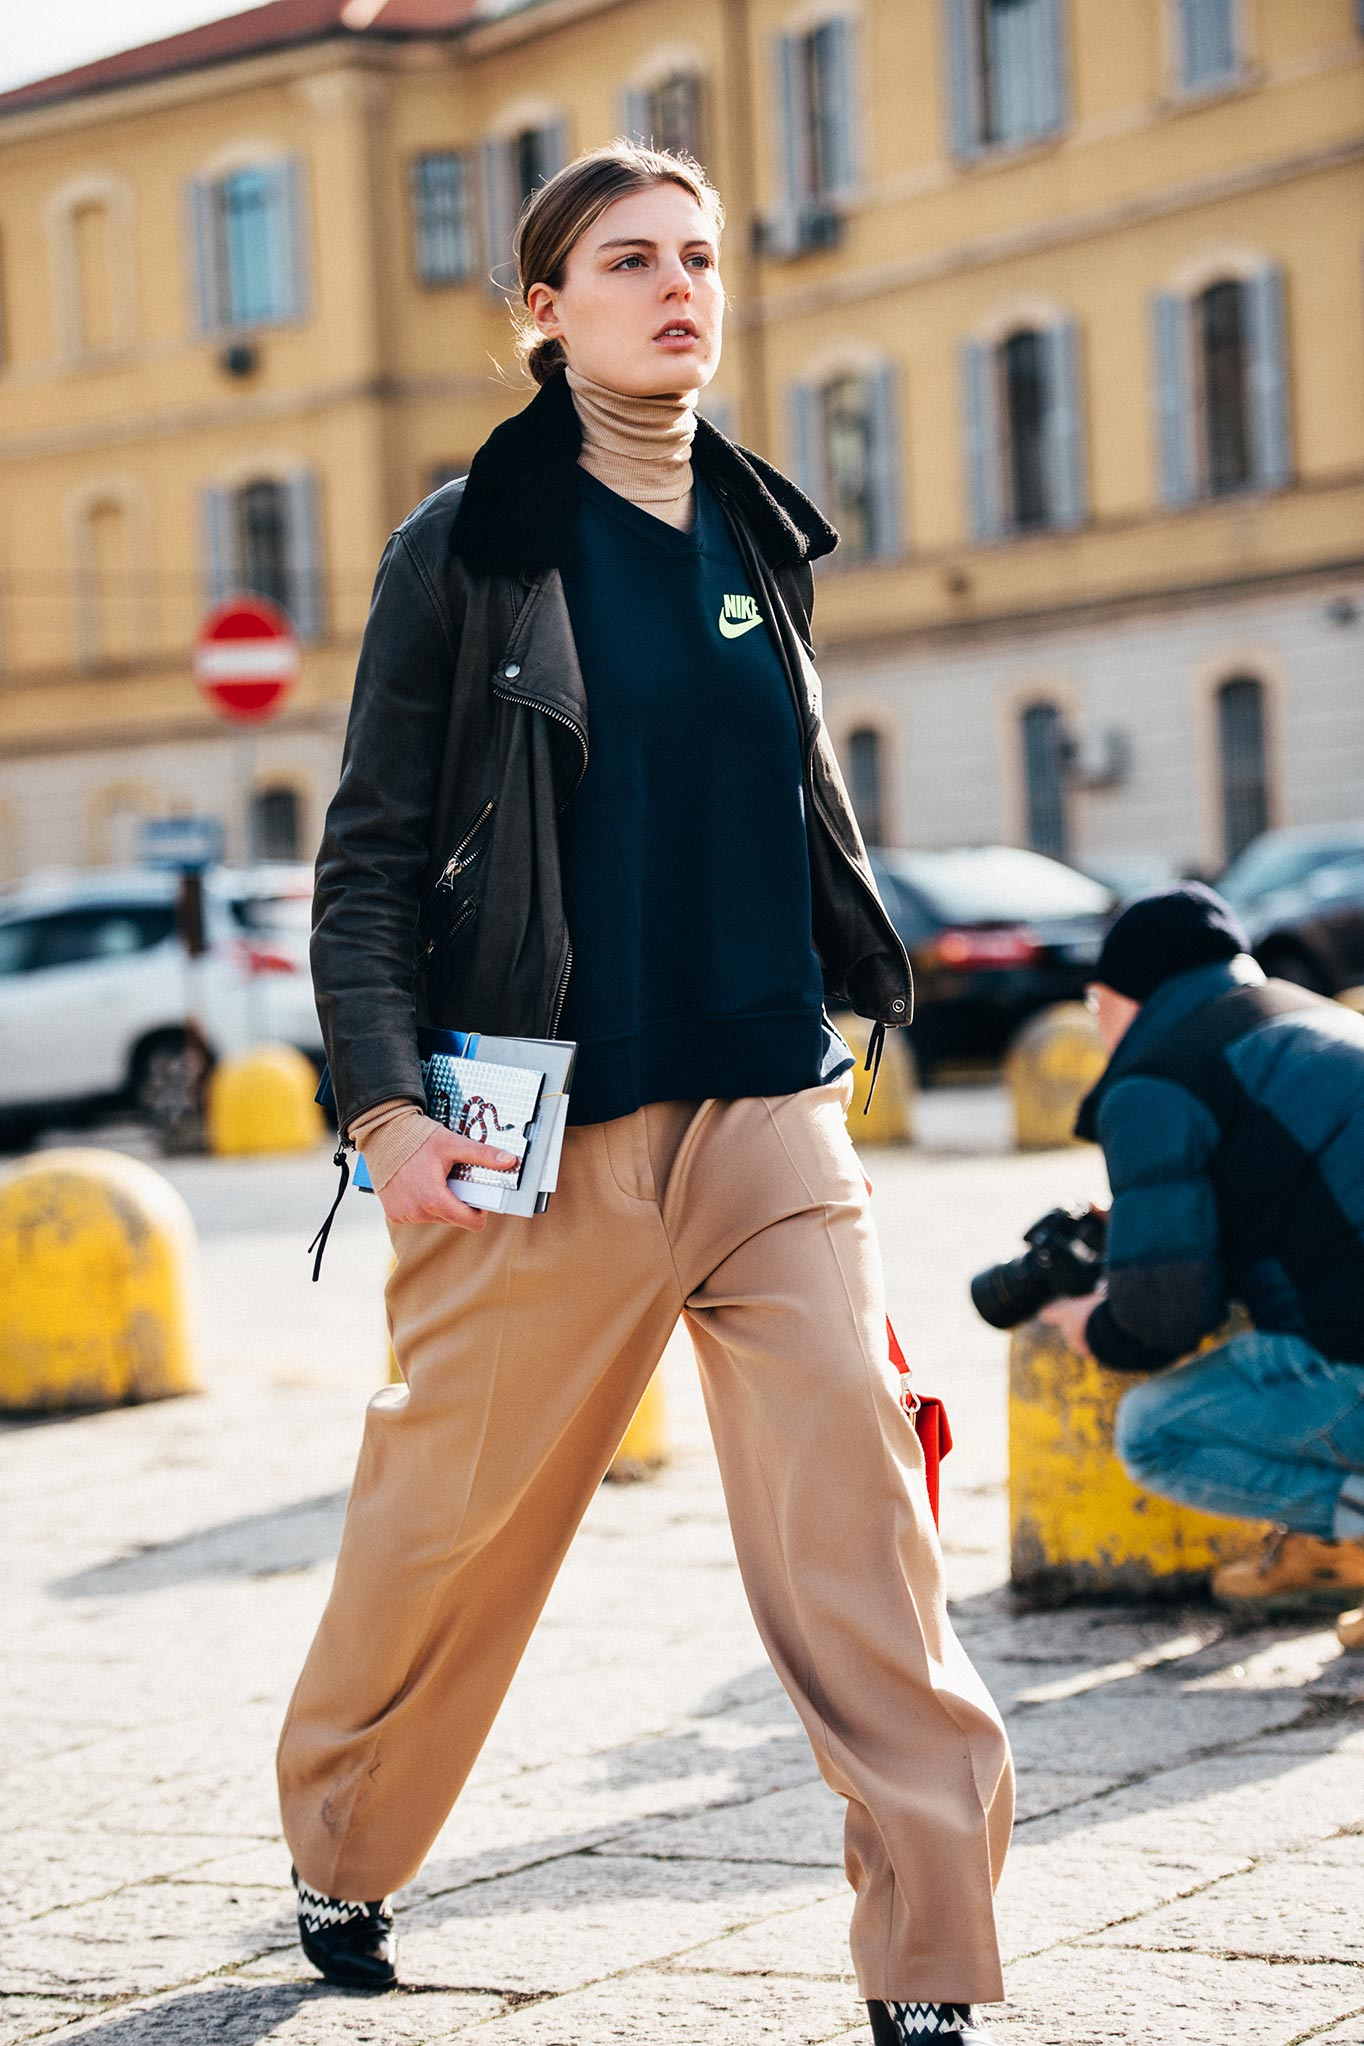 Claire Beermann at Milan Men's Fashion Week Fall/Winter 2016